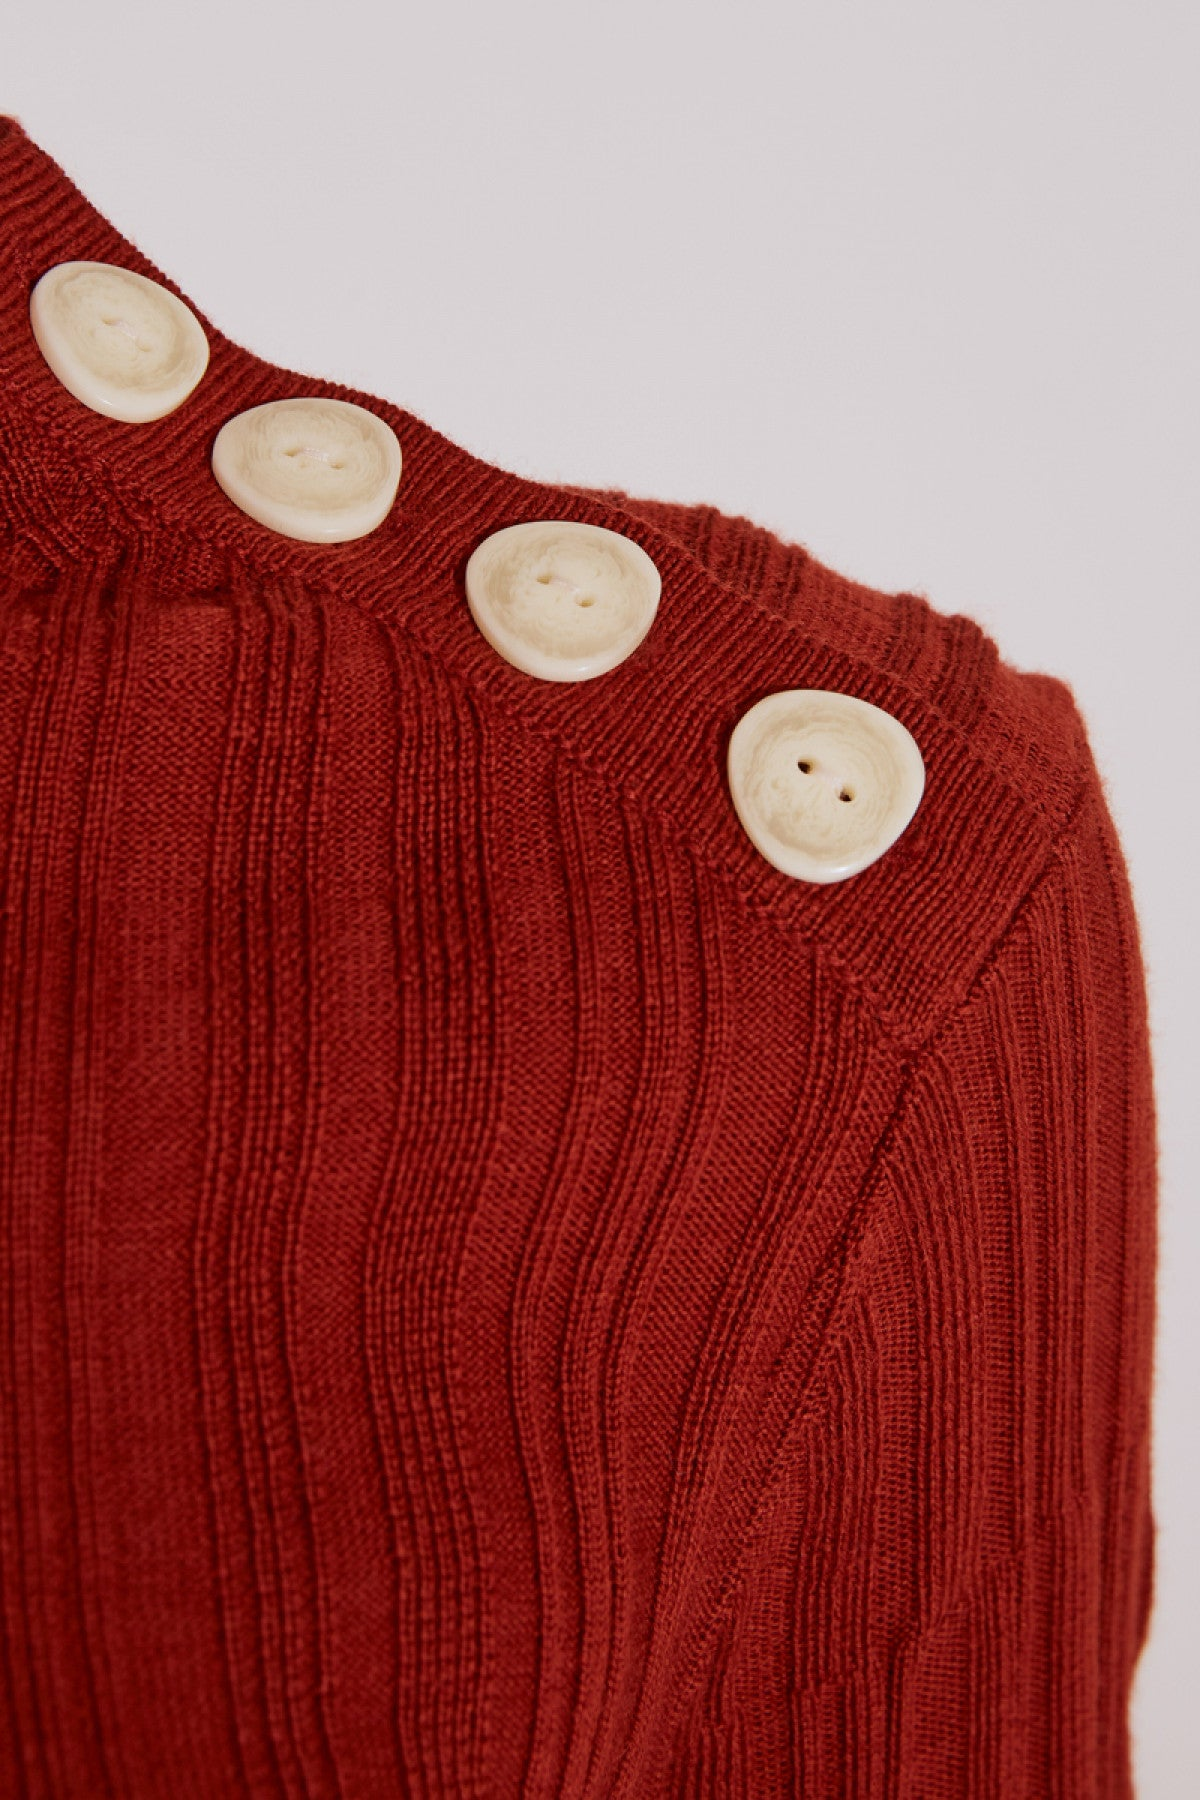 STAGES LONG SLEEVE KNIT TOP rust